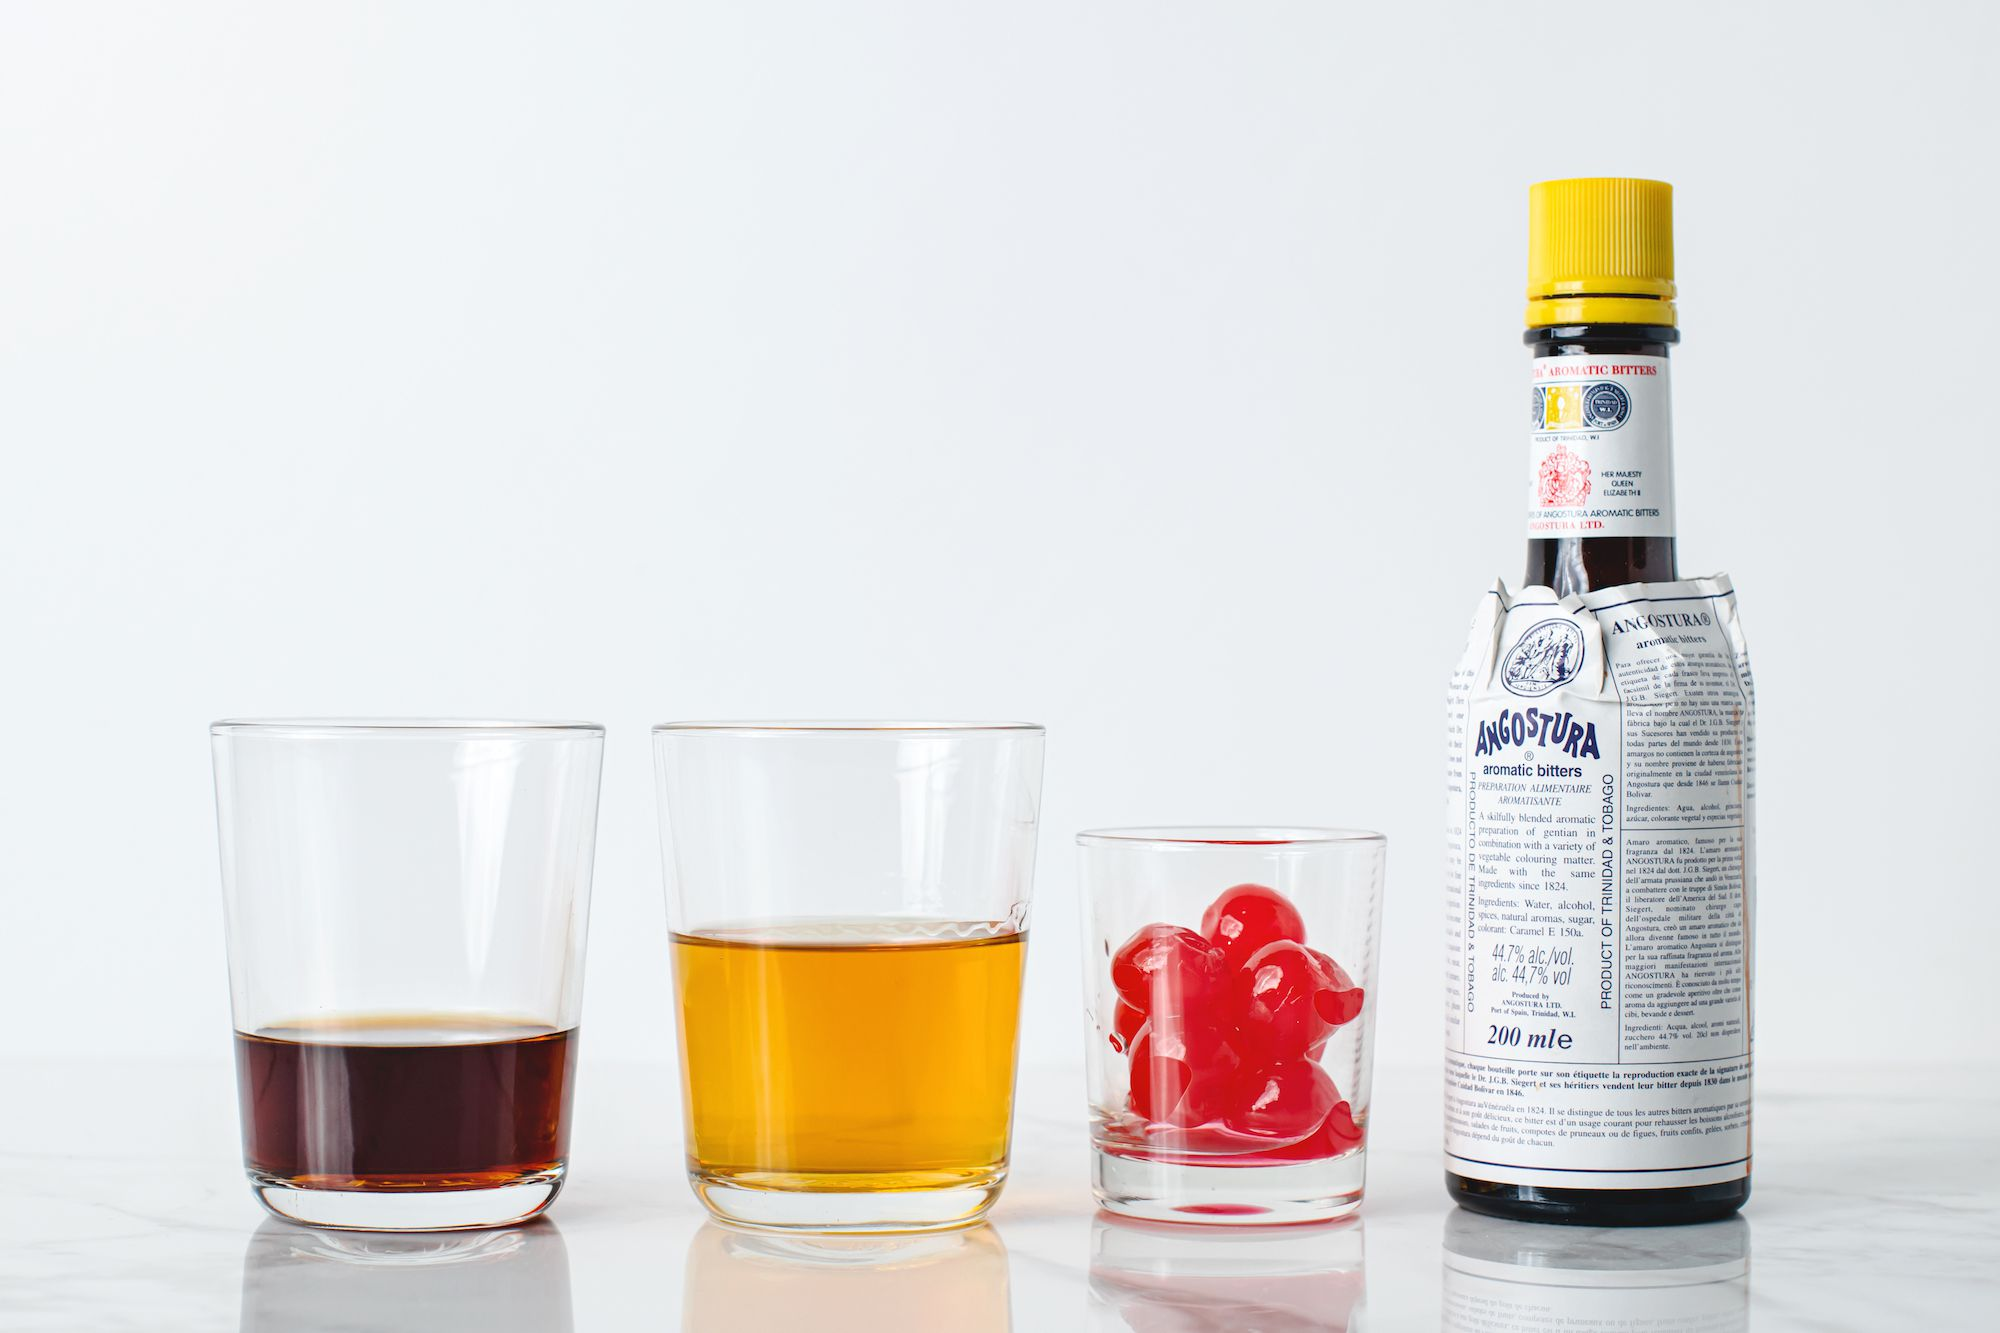 Ingredients for a classic Manhattan cocktail